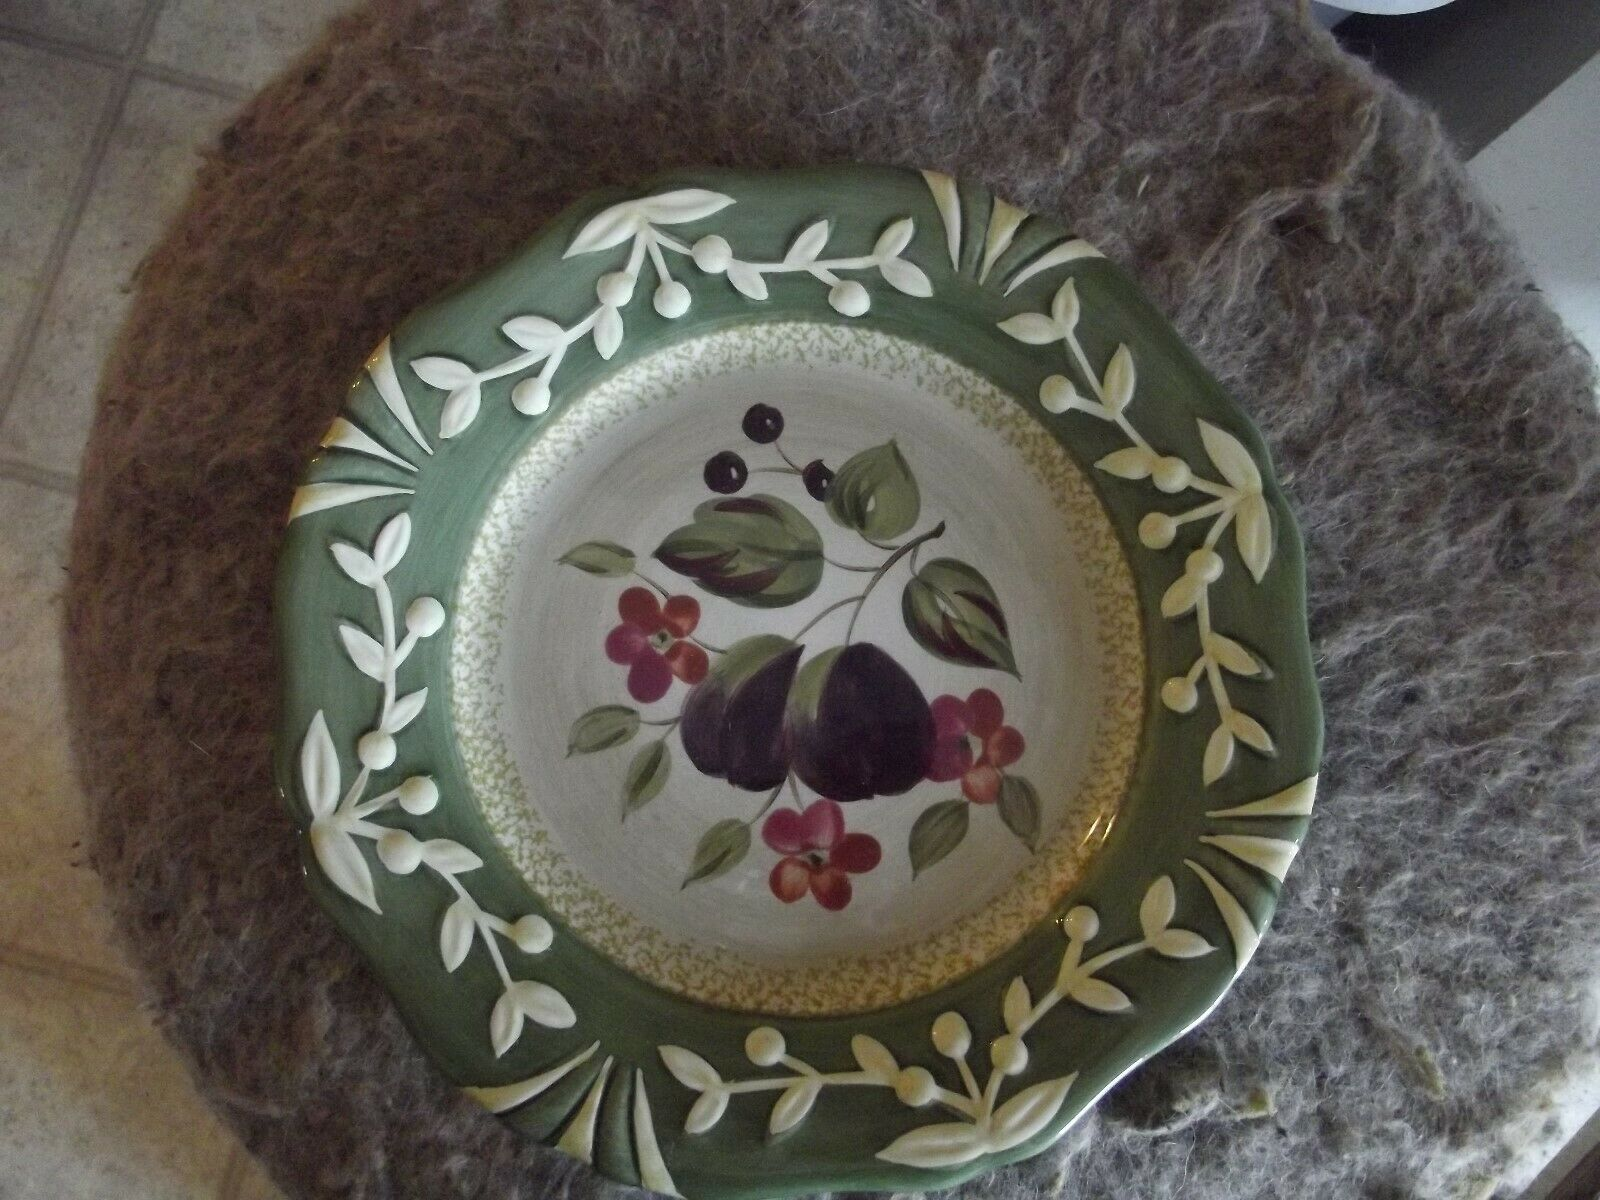 Primary image for Certified International La Toscana plum salad plate 1 available